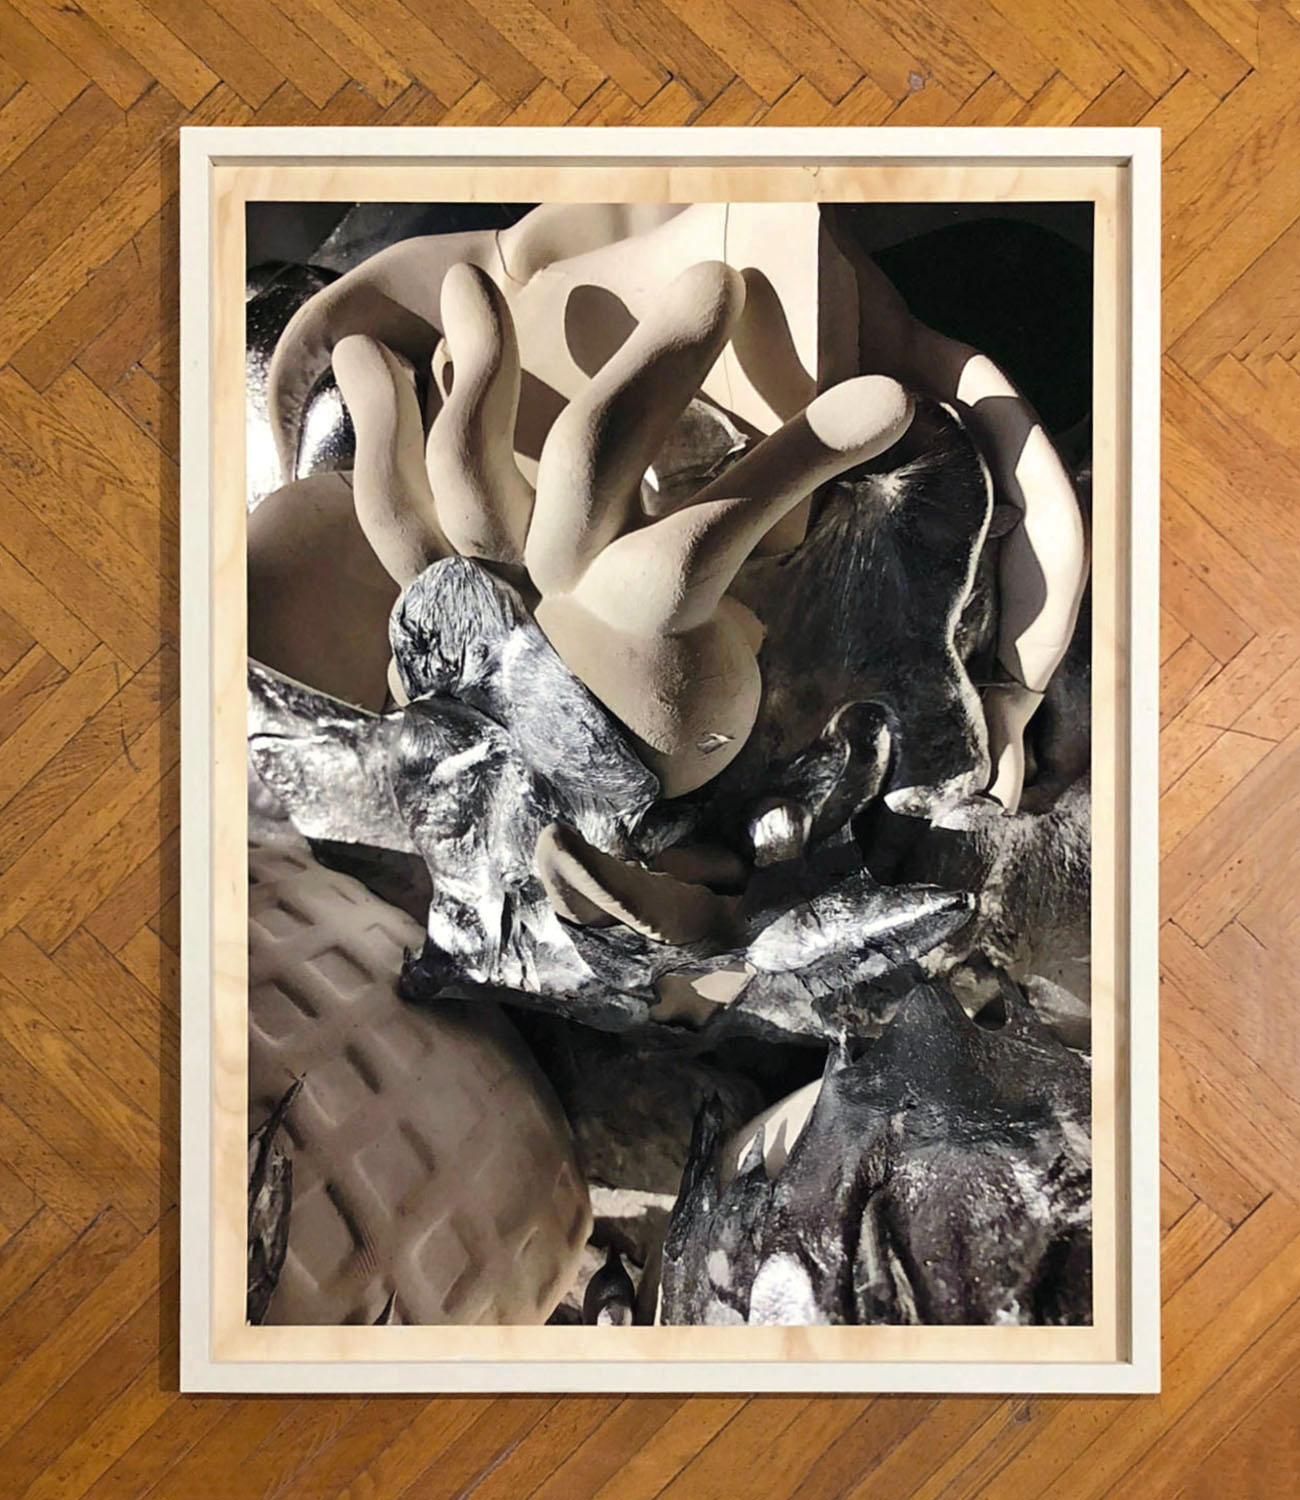 Incident , 2018, archival pigment print on paper, wood, latex paint, 63 x 49 x 3.5 inches